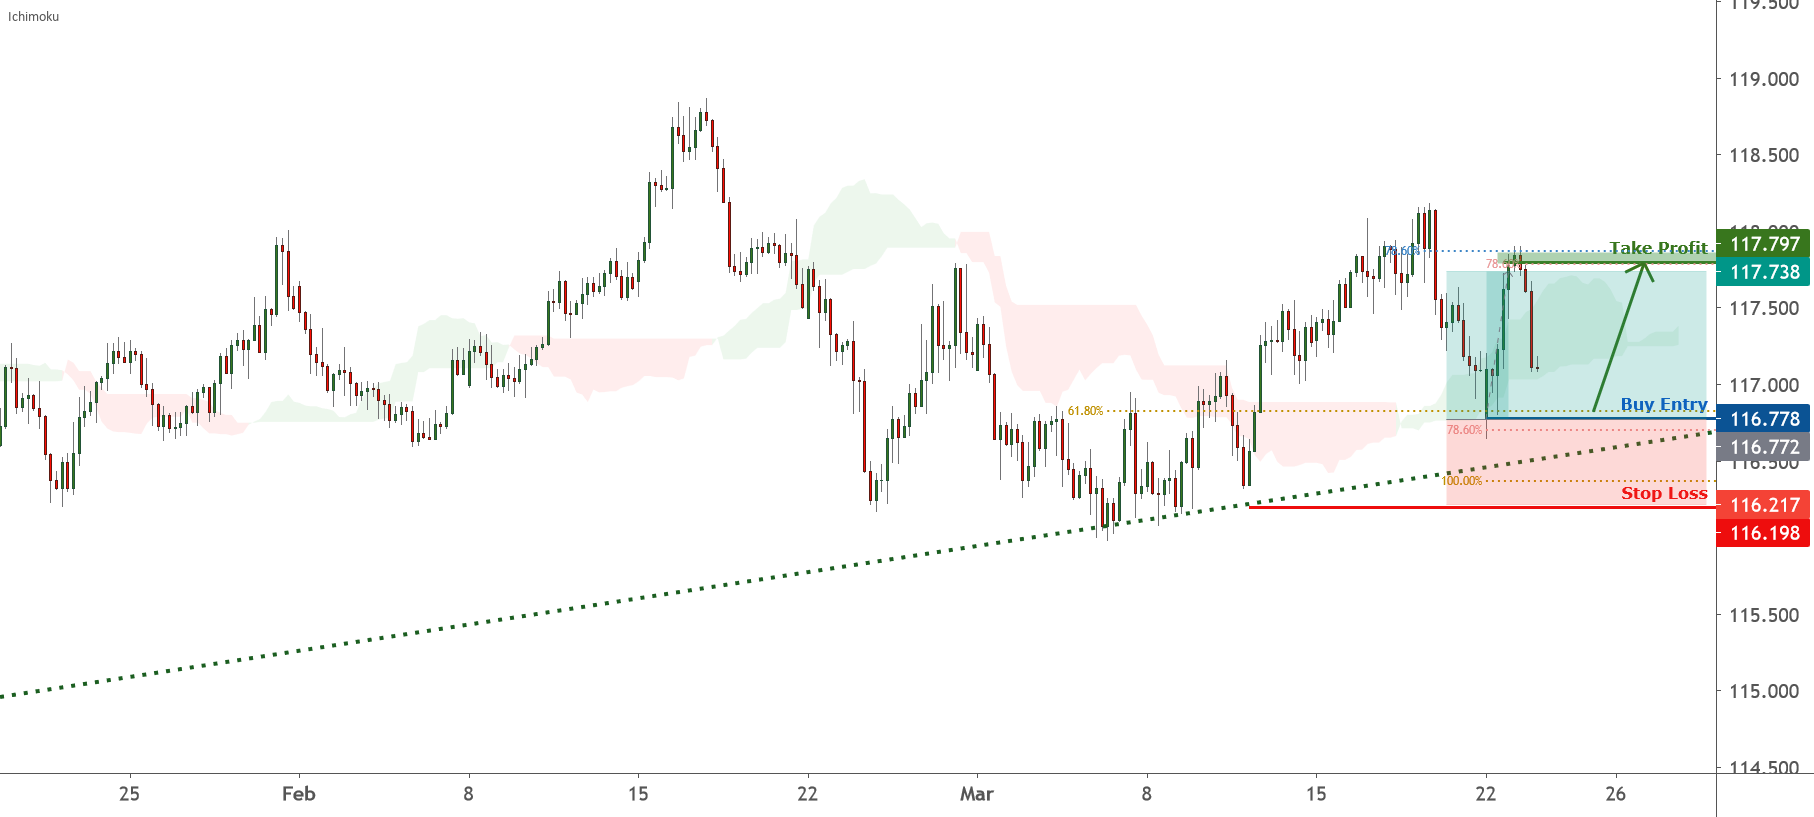 CHFJPY is approaching support, potential bounce | 23 Mar 2021 for FX:CHFJPY by FXCM